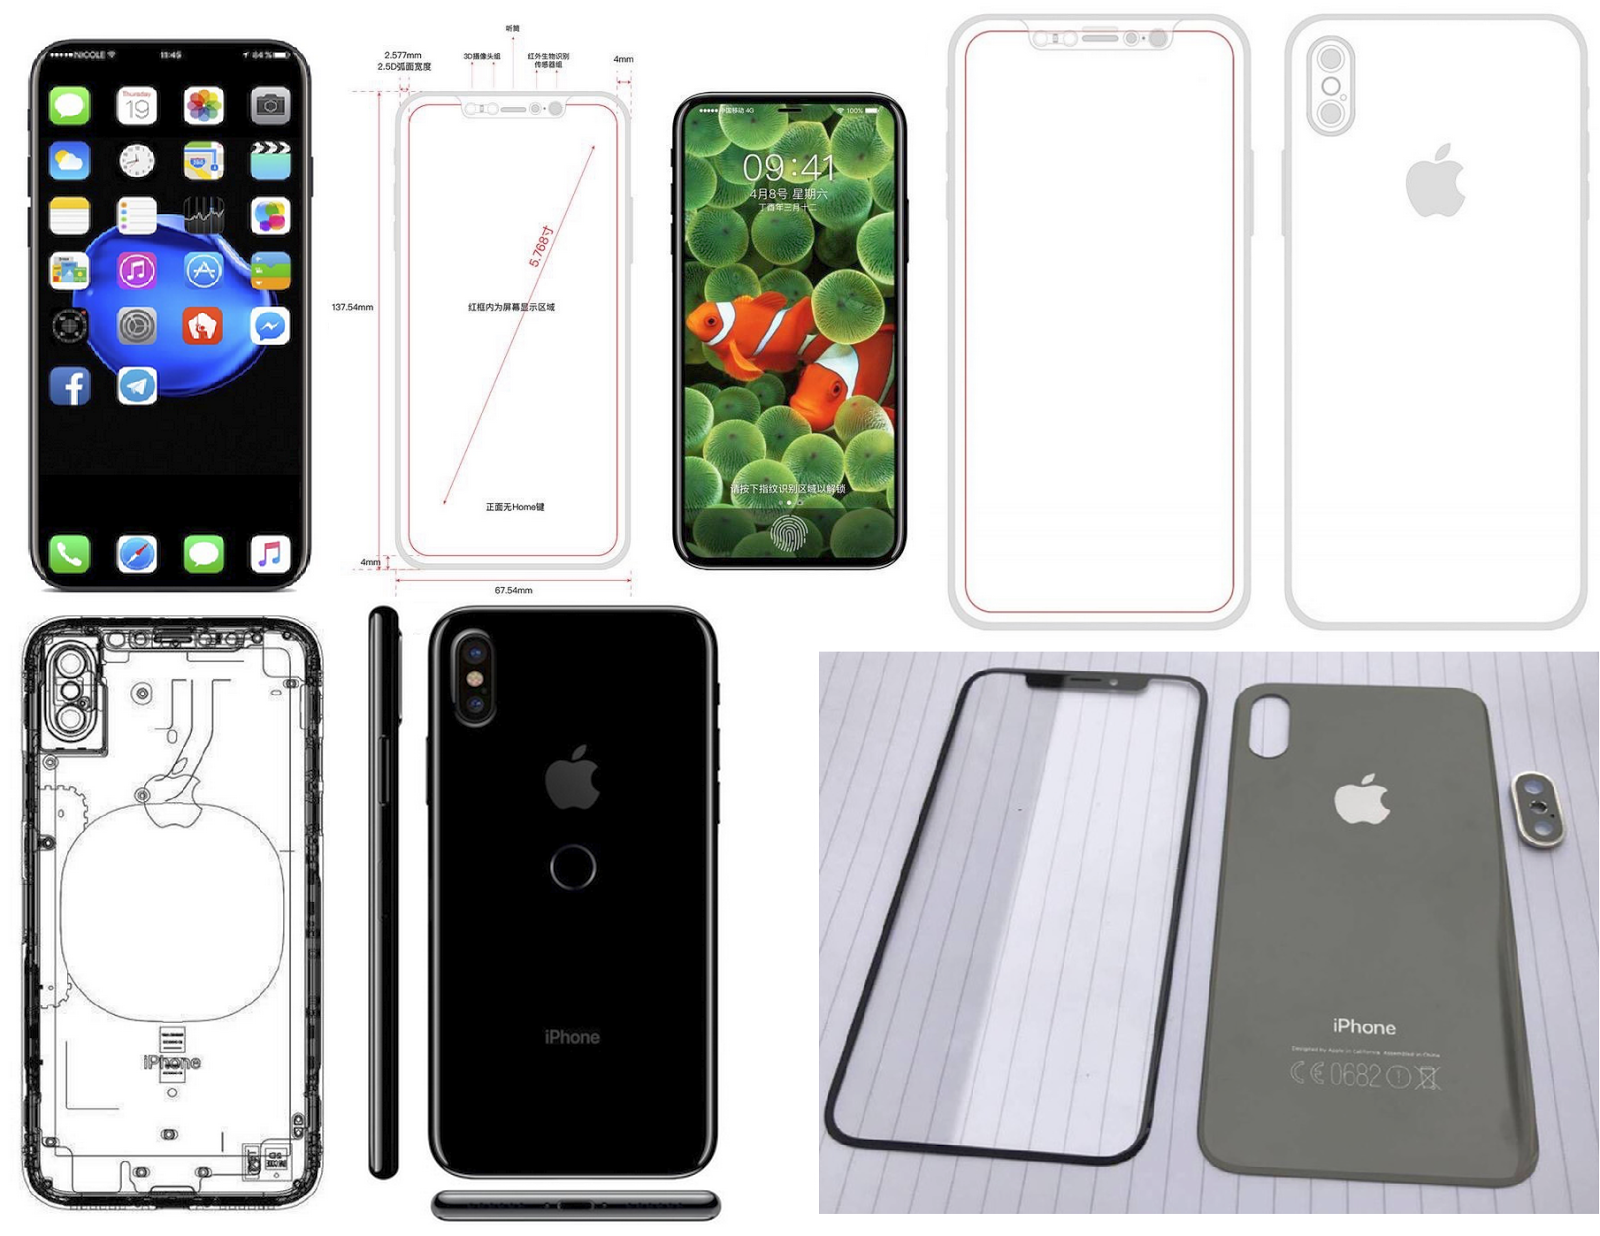 Iphone 8 Manual Manual Guide